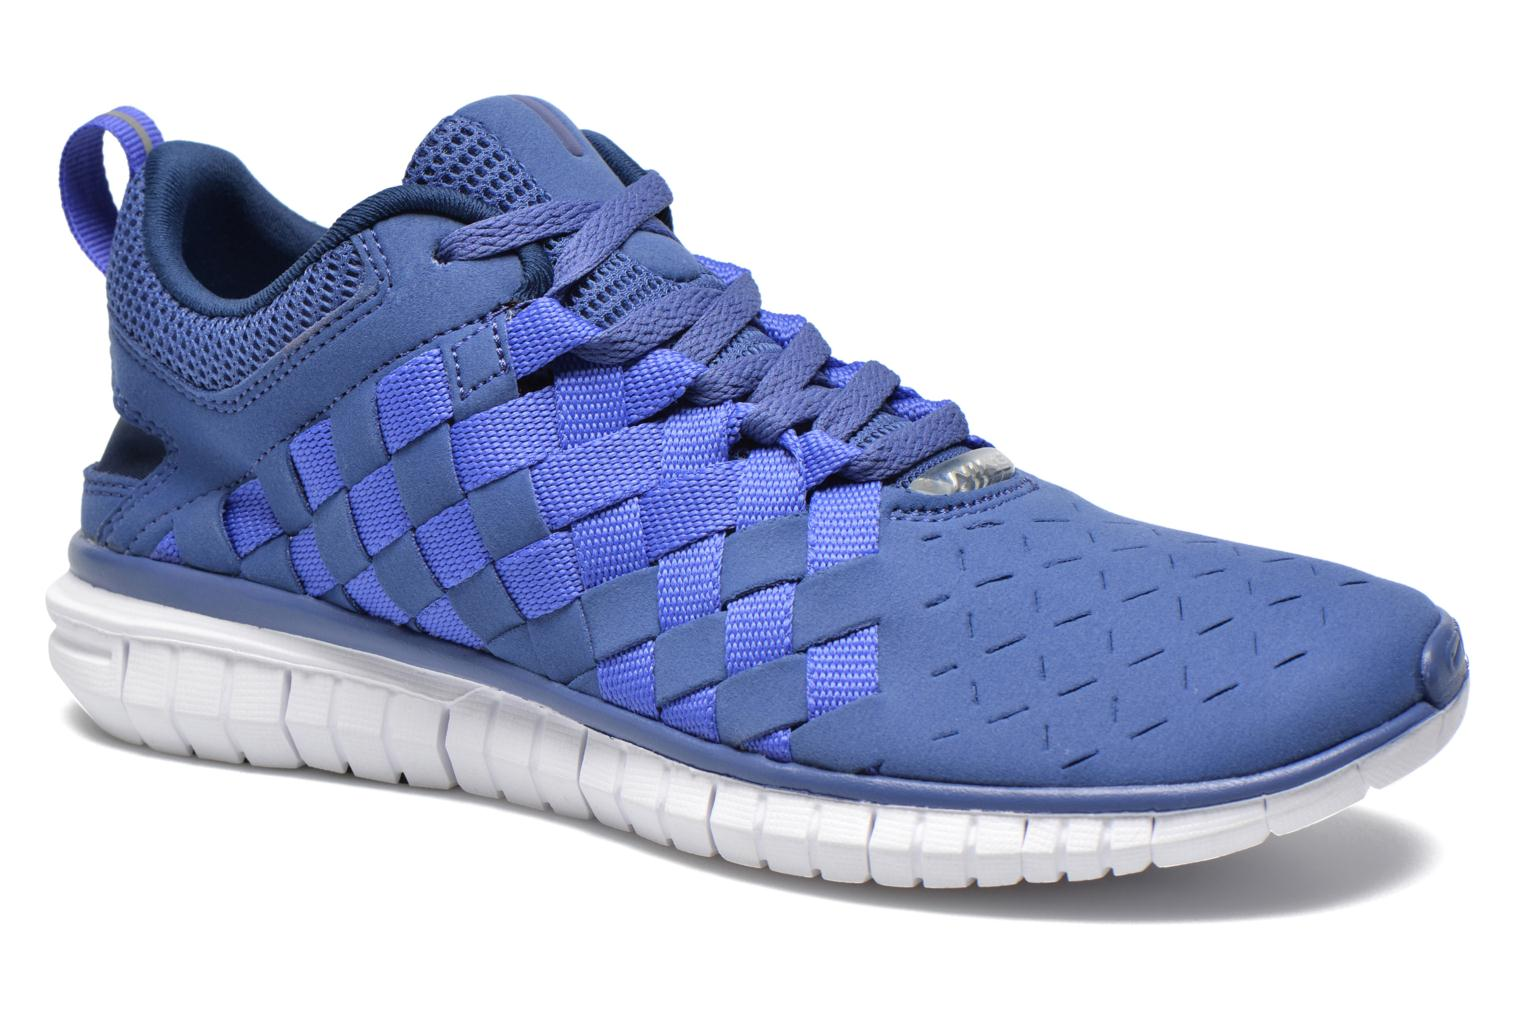 Sneakers Nike Free Og '14 Woven by Nike